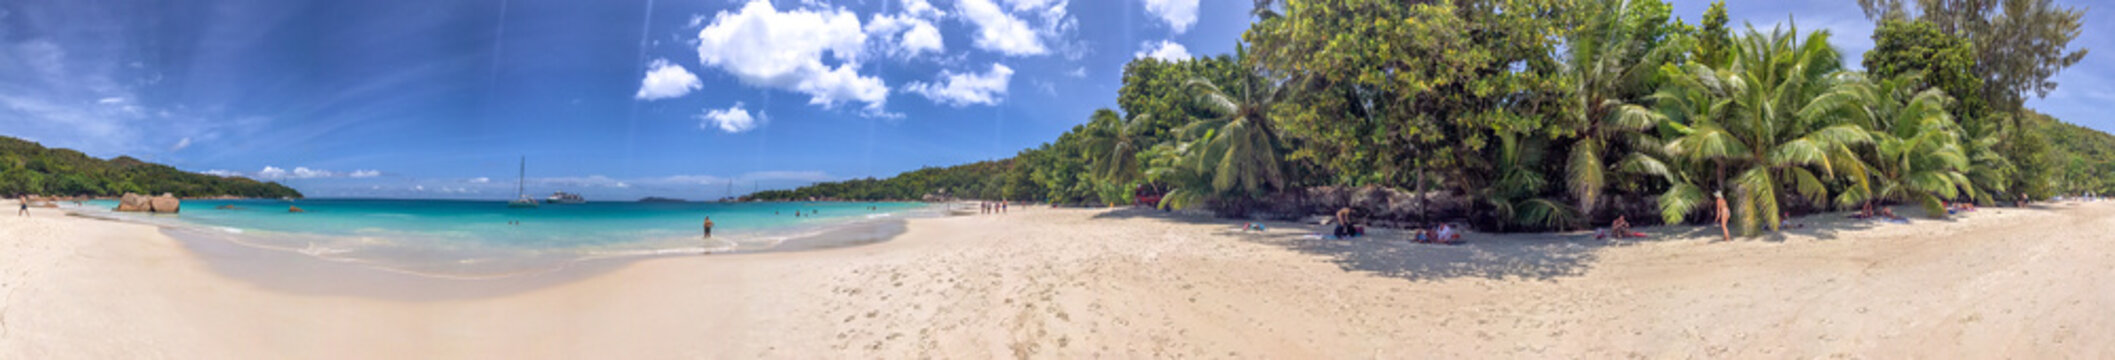 Panoramic view of Anse Lazio, Praslin - Seychelles